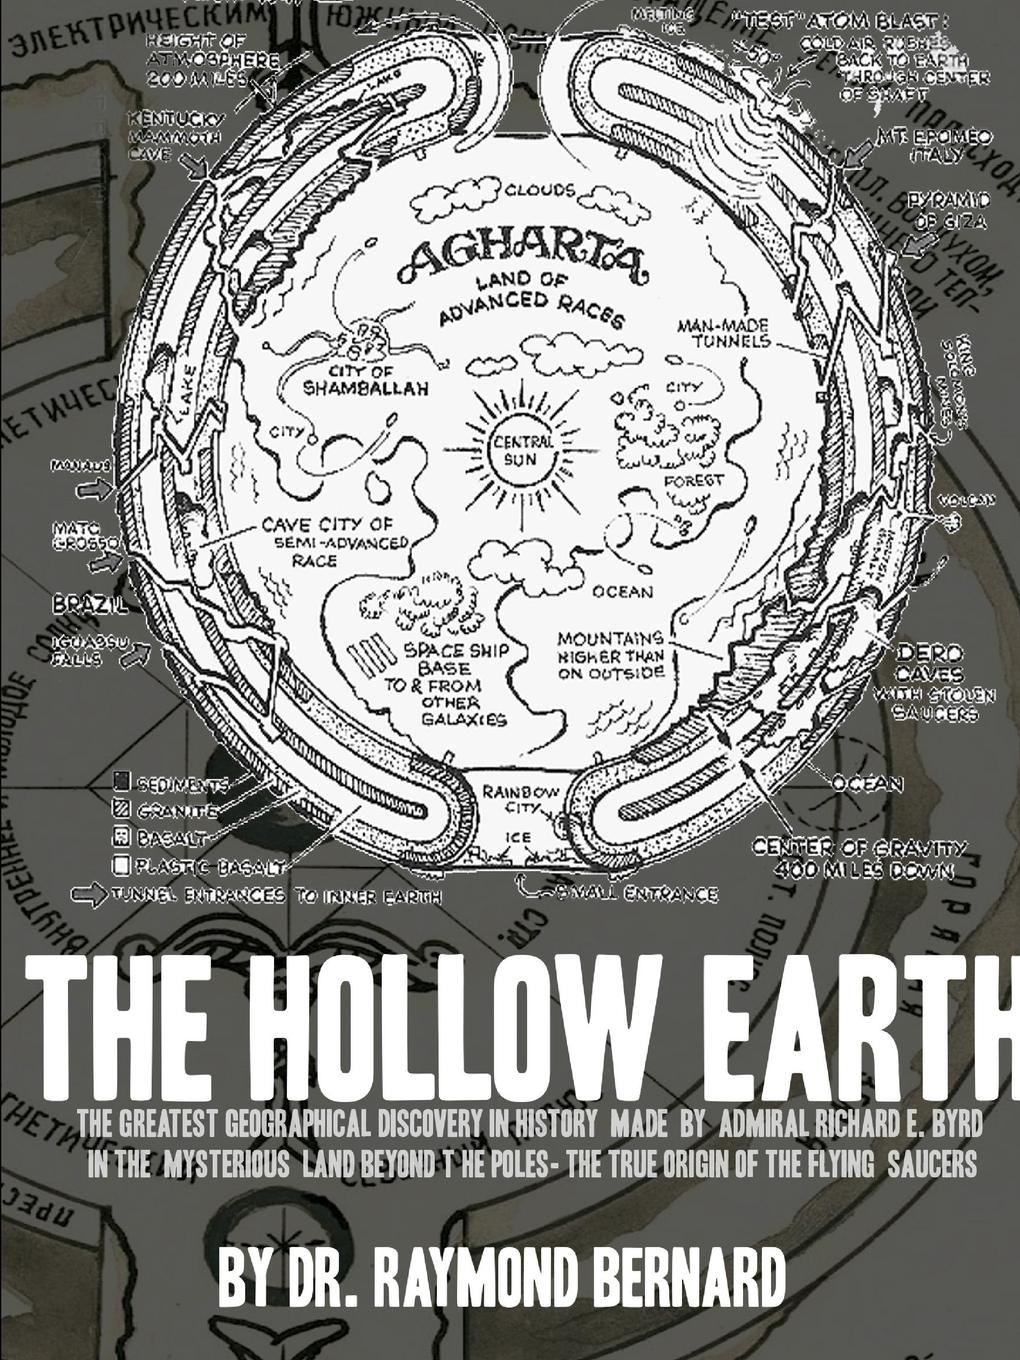 Raymond W Bernard The Hollow Earth. The Greatest Geographical Discovery in History Made by Admiral Richard E. Byrd in the Mysterious Land Beyond the Poles- The True Origin of the Flying Saucers w byrd in nomine a 5